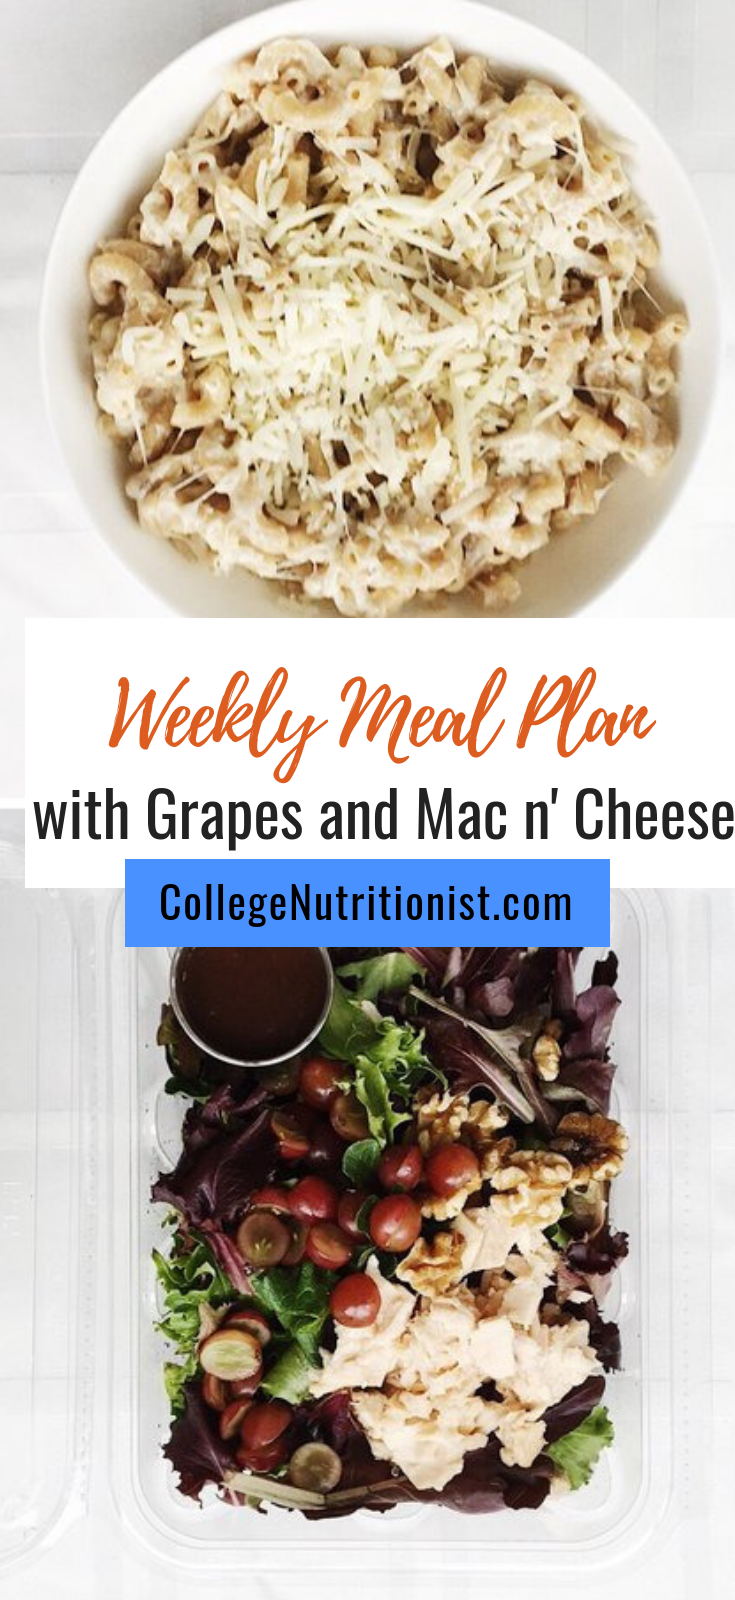 1400 Calorie Low Carb High Protein Meal Plan With Mac Cheese And Grapes The College Nutritionist Protein Meal Plan High Protein Recipes High Protein Meal Plan